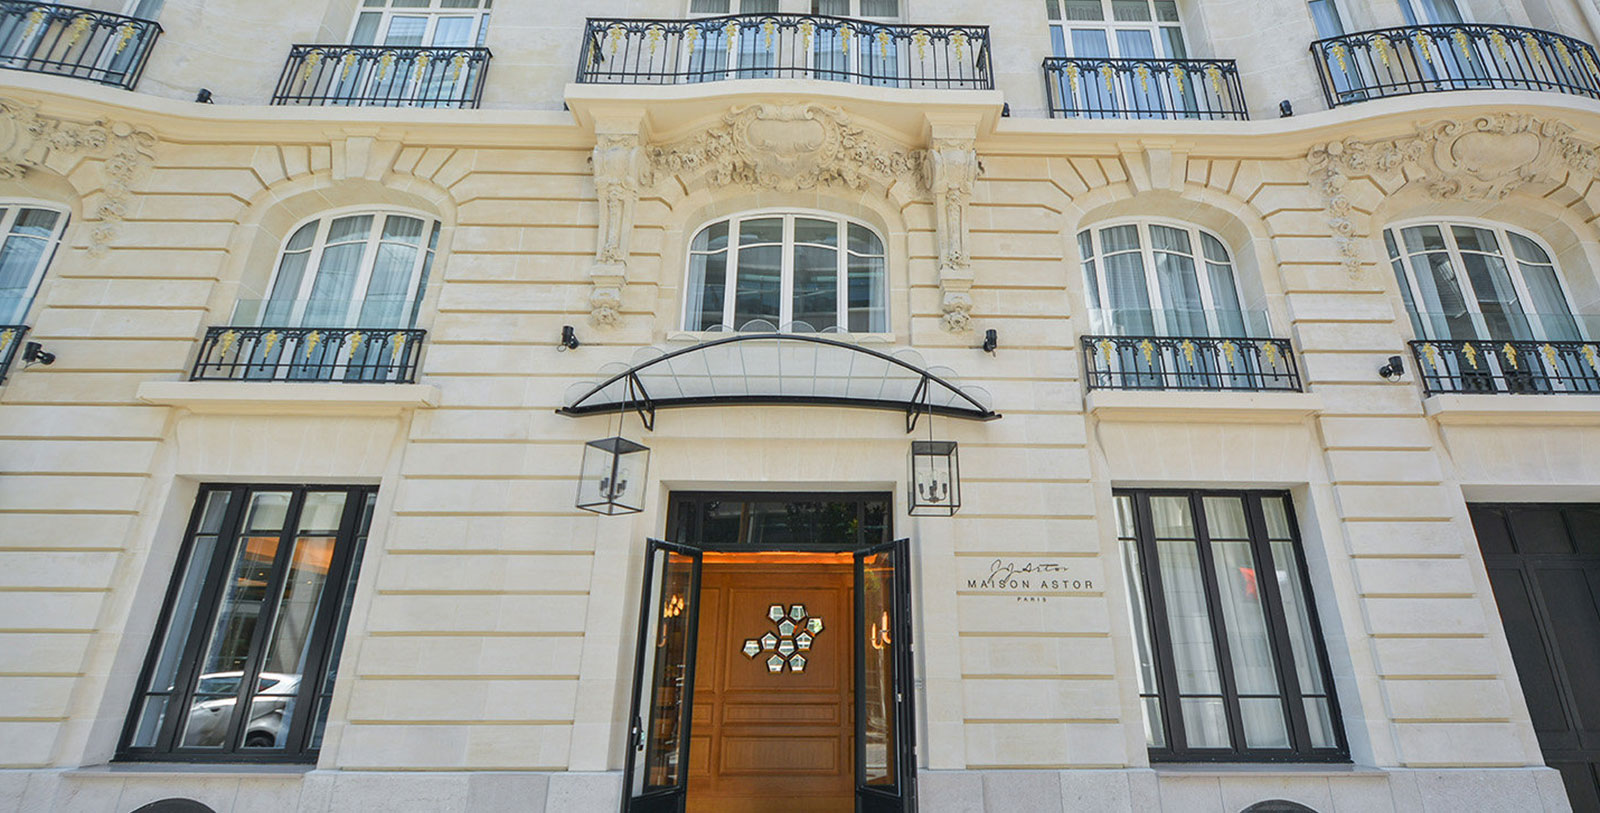 Image of Hotel Entrance Maison Astor Paris, Curio Collection by Hilton, 1907, Member of Historic Hotels Worldwide, in Paris, France, Overview